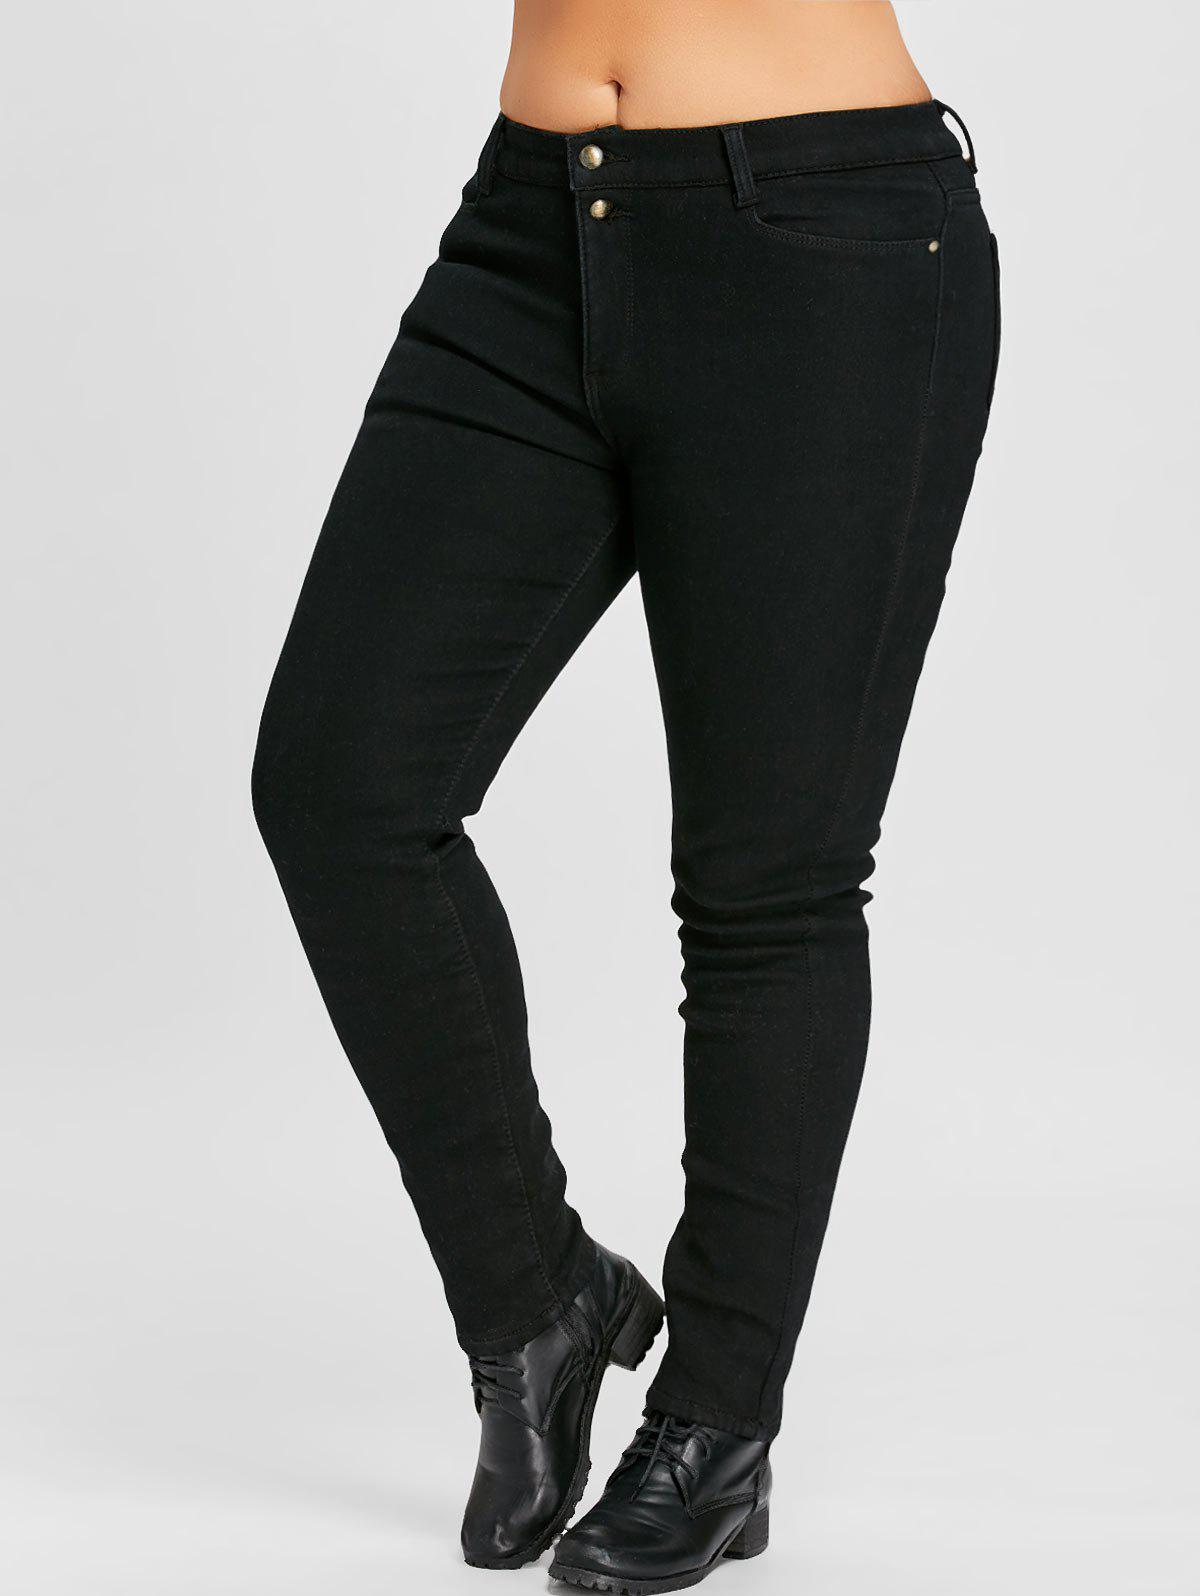 Midi Rise Plus Size  Zipper Fly Slim JeansWOMEN<br><br>Size: 4XL; Color: BLACK; Style: Fashion; Length: Ninth; Material: Jeans,Polyester; Fabric Type: Denim; Fit Type: Skinny; Waist Type: Mid; Closure Type: Zipper Fly; Pattern Type: Solid; Embellishment: Button,Pockets; Pant Style: Pencil Pants; Weight: 0.7500kg; Package Contents: 1 x Jeans;